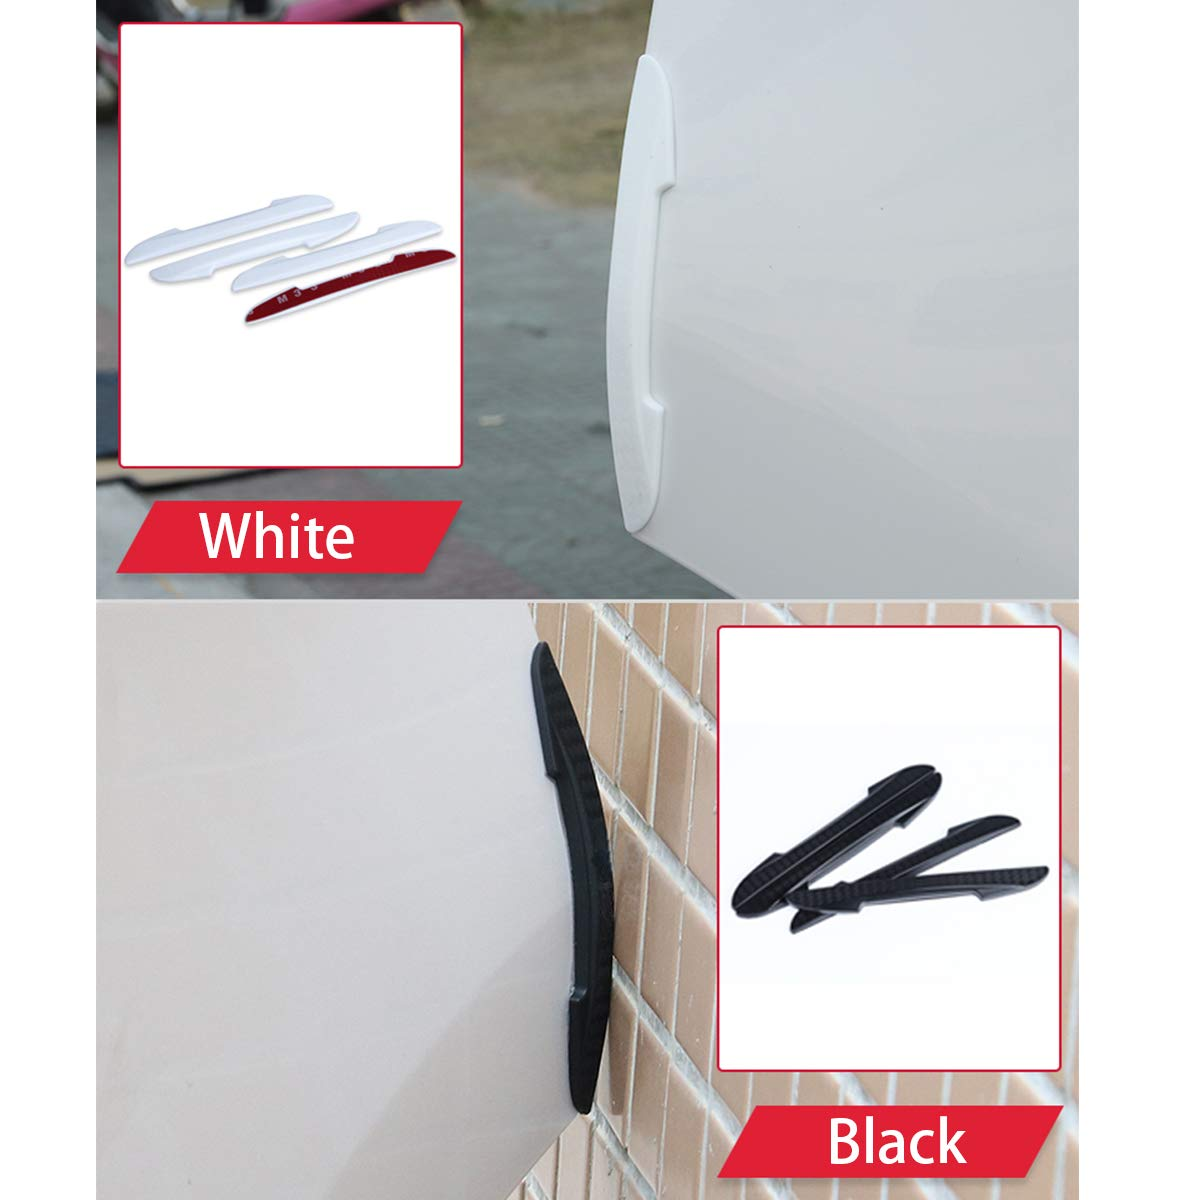 EKIND Self Adhesive Car Side Door Guard Edge Protector Fit for Most Car 8 pcs Set, White